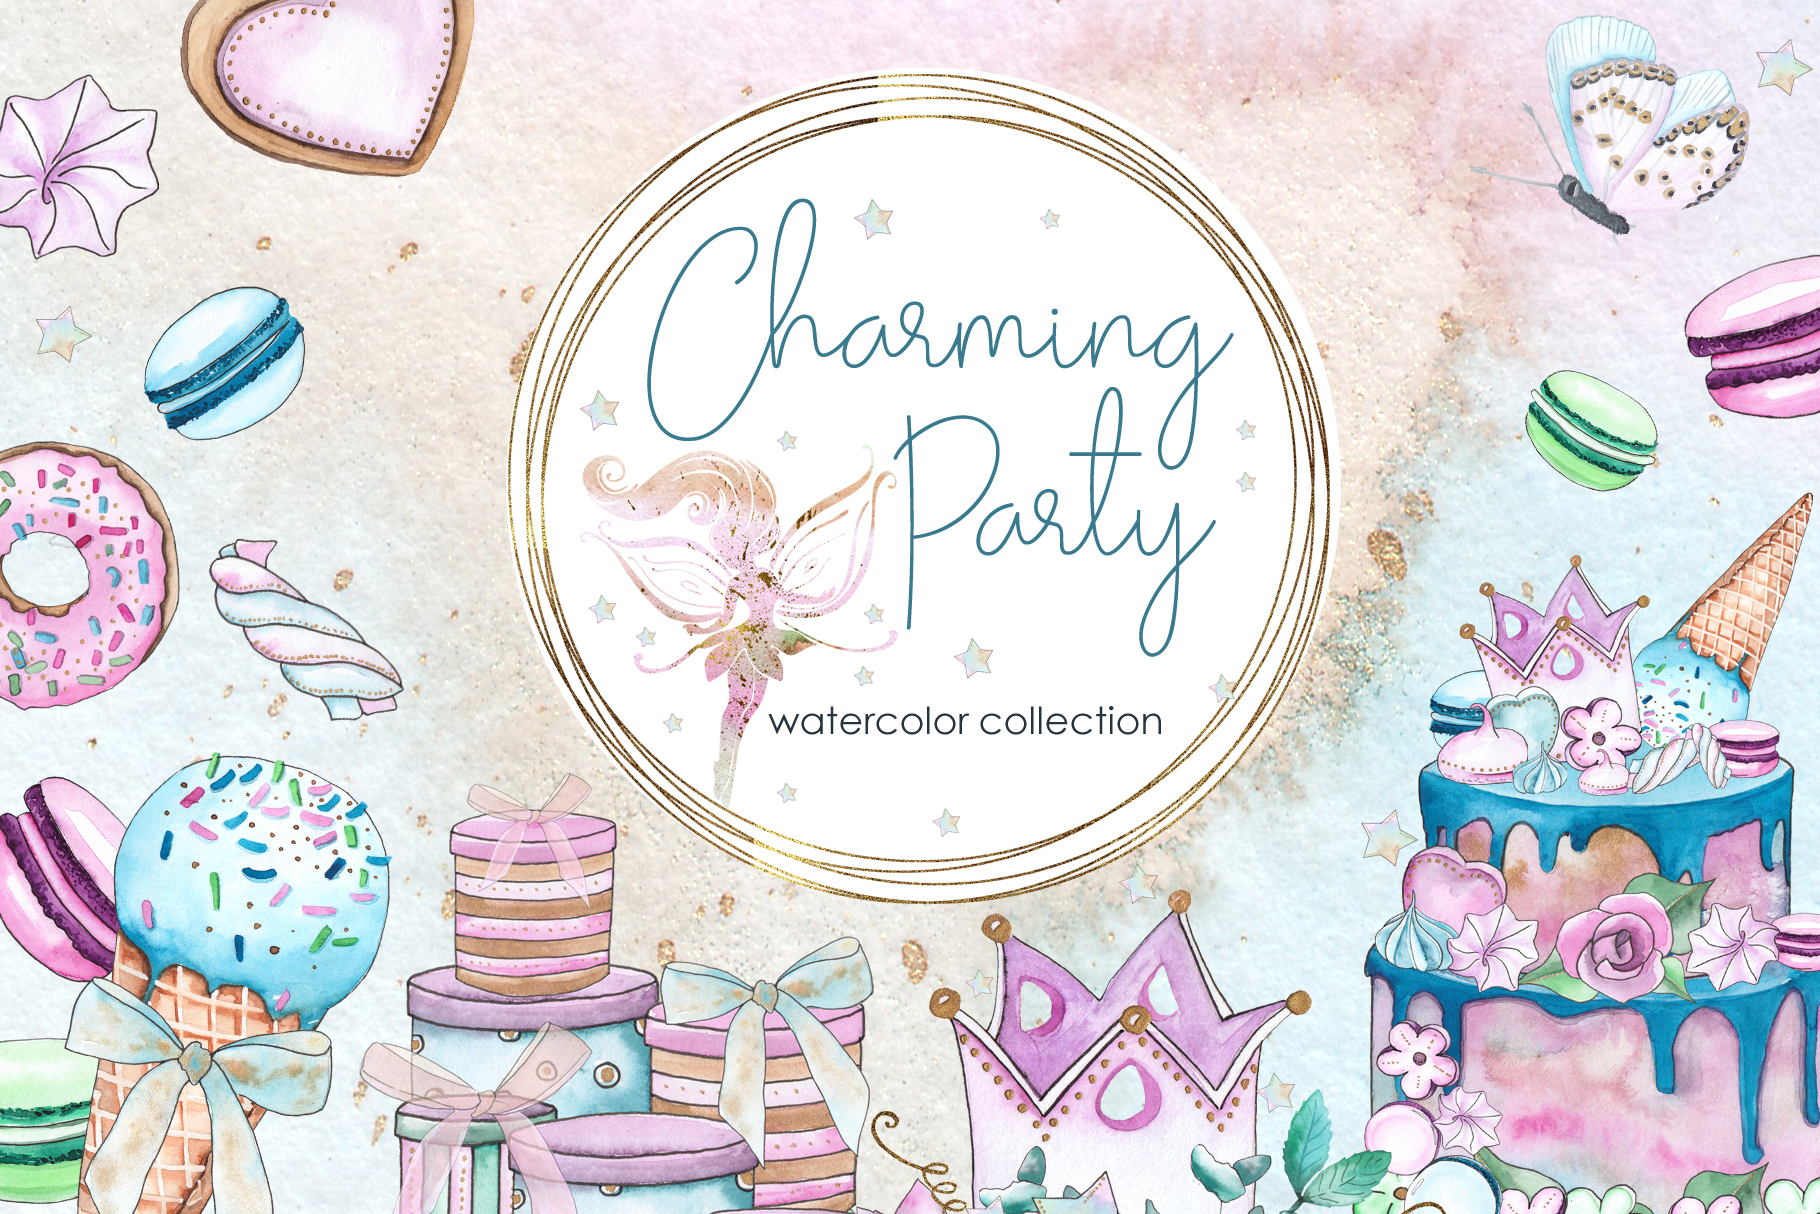 Charming party. Watercolor collection example image 1